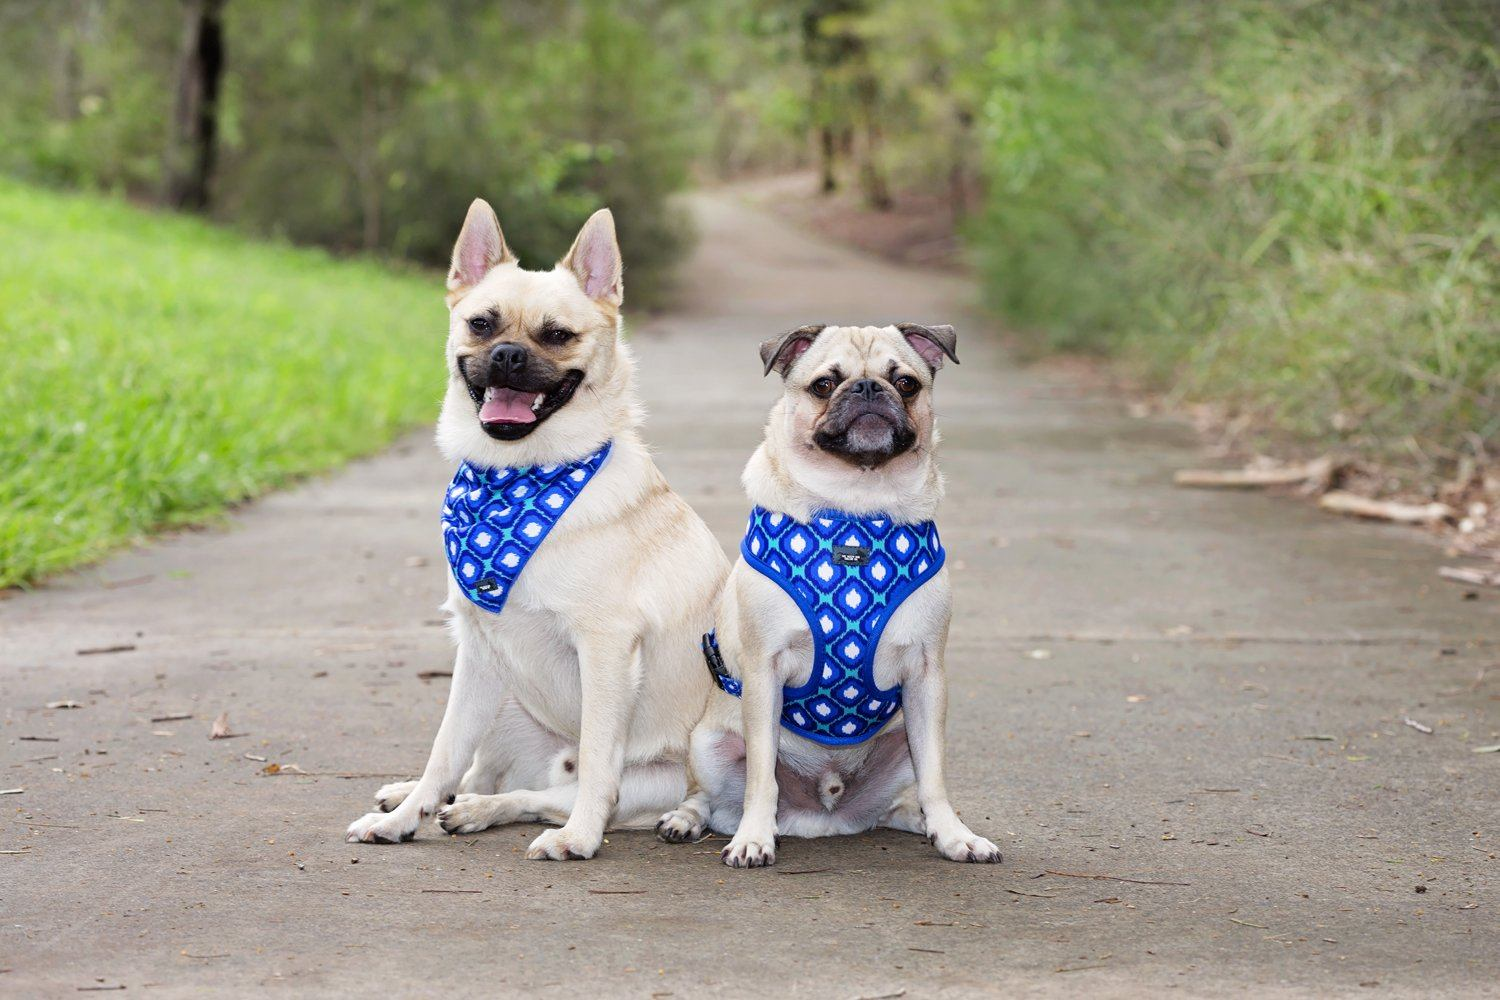 DOG HARNESS - Blue Ikat - Standard Dog Harness-Harness-Dizzy Dog Collars-Extra Small-Dizzy Dog Collars